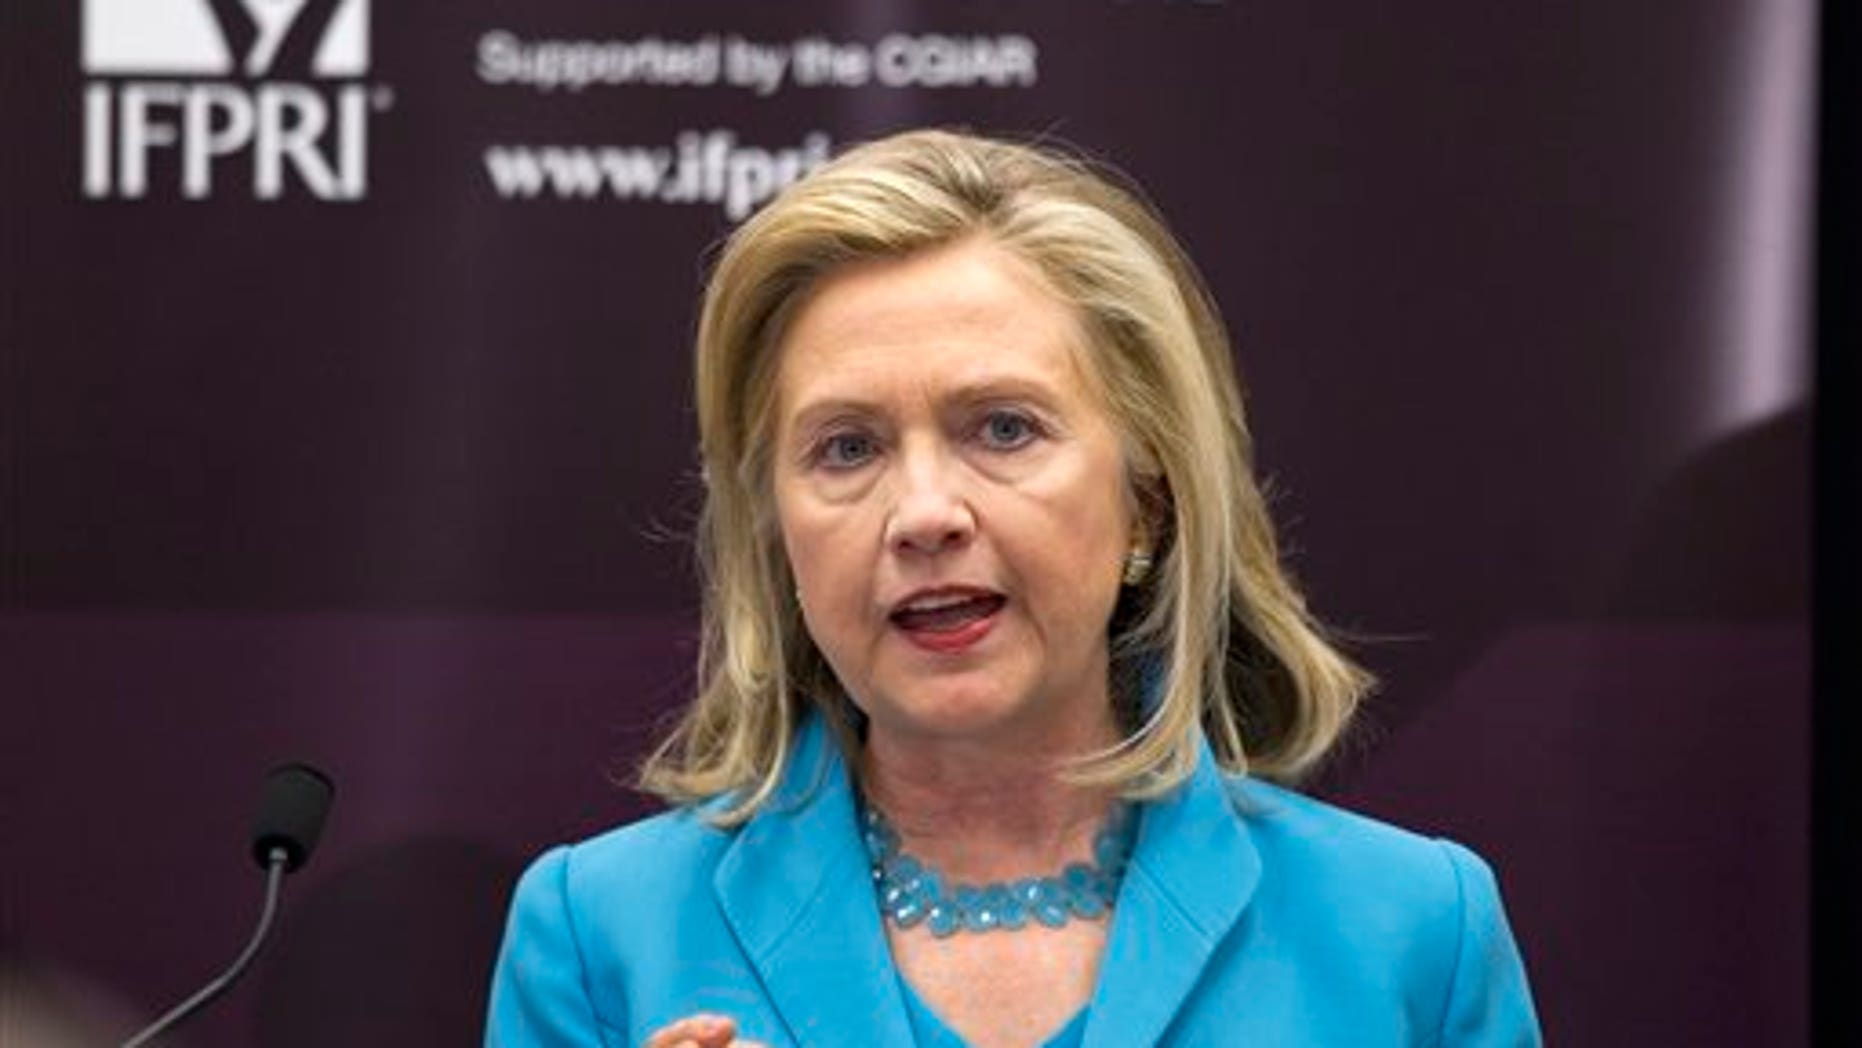 August 11: Secretary of State Hillary Rodham Clinton during a speech on the humanitarian crisis in East Africa at the International Food Policy Research Institute in Washington.